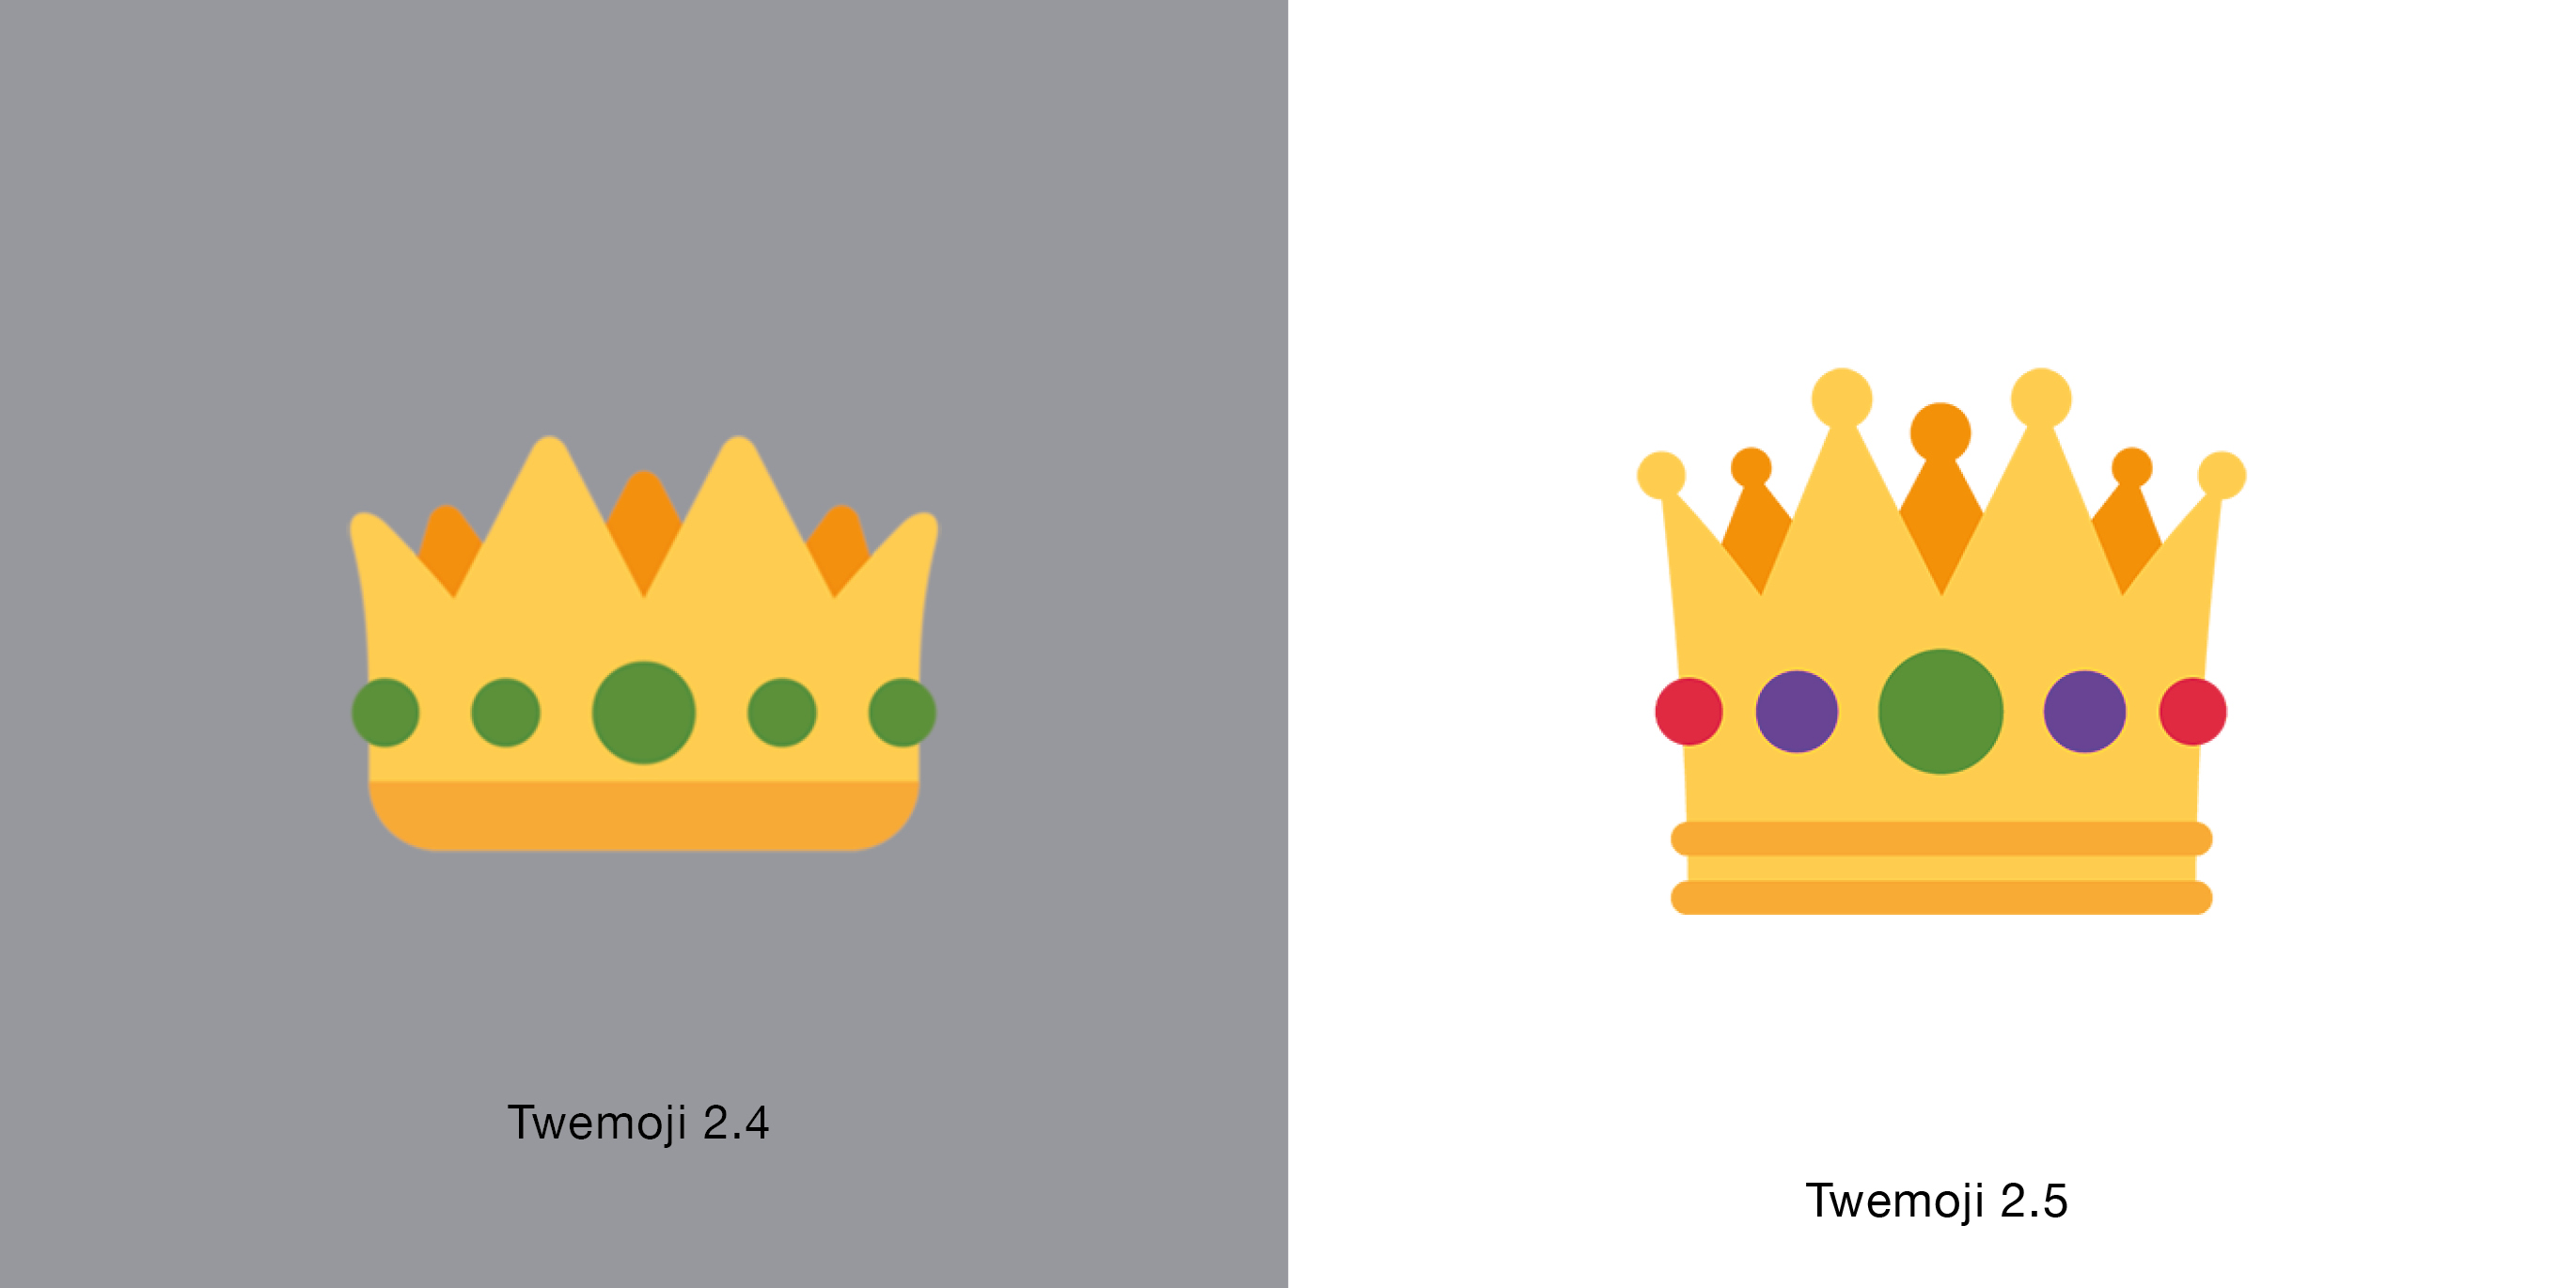 crown-2.5-emojipedia-twittertwemoji-emojipedia-1